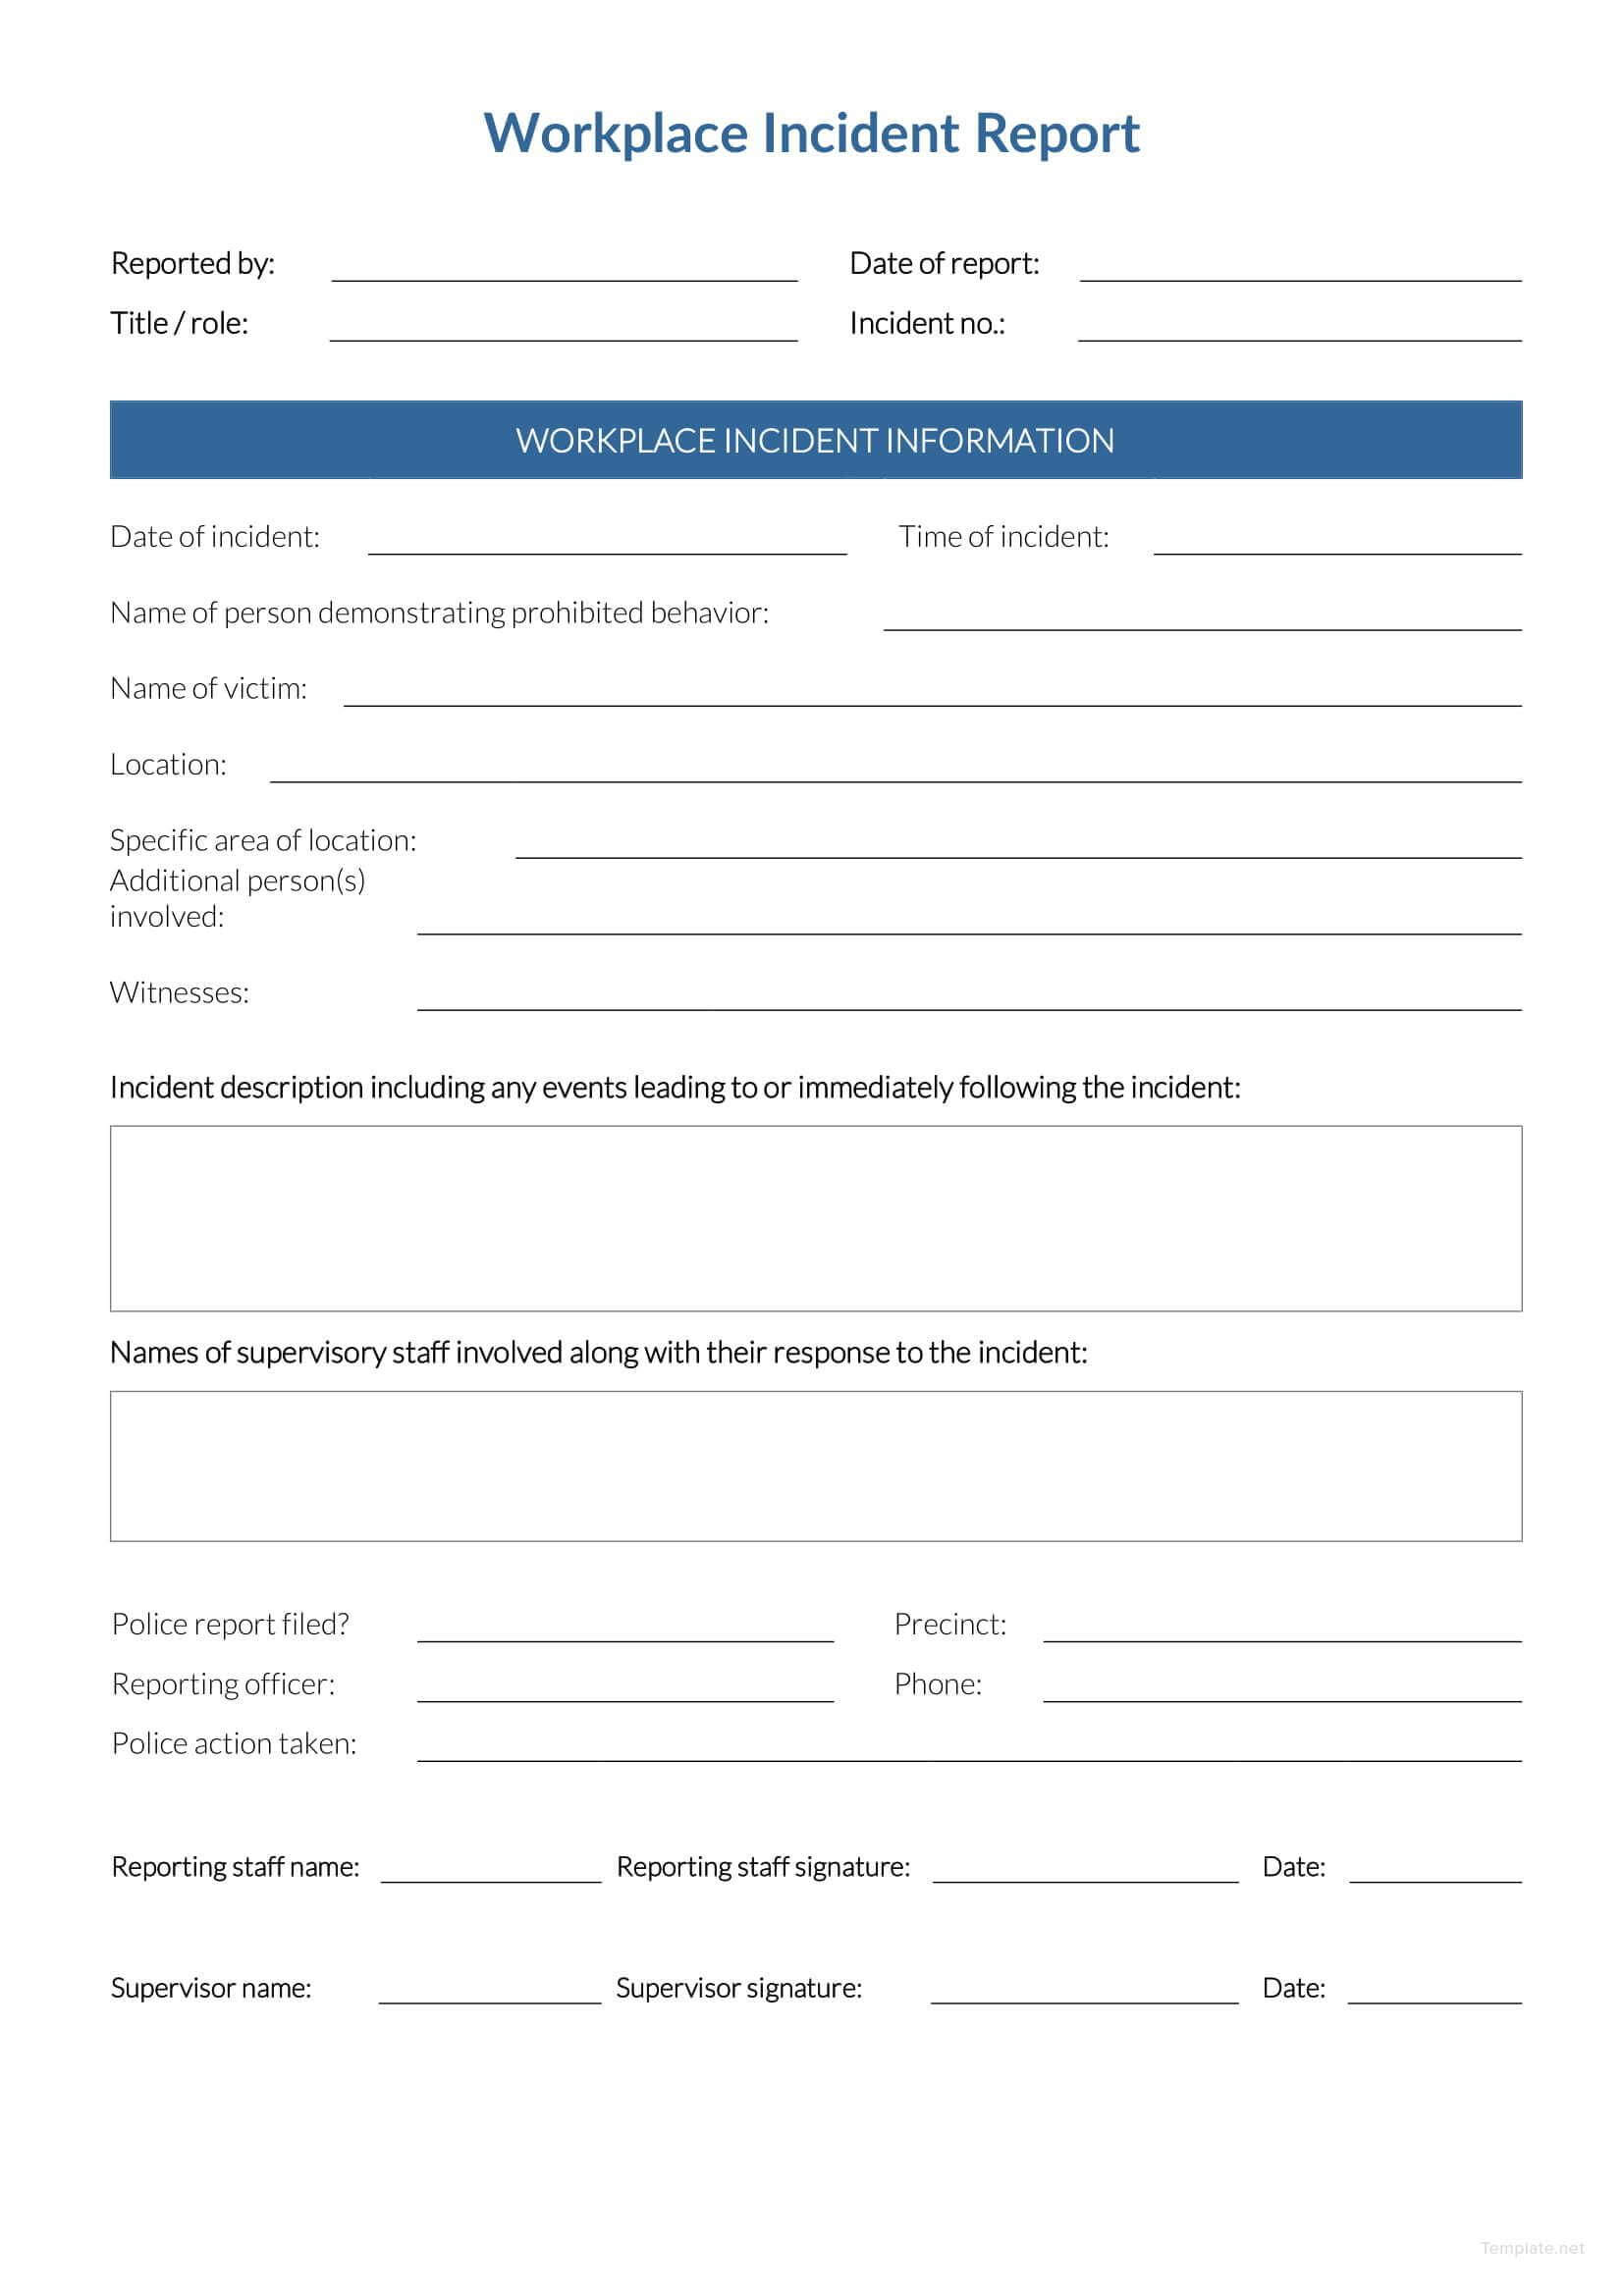 Free Workplace Incident Report | Data Form | Incident Report throughout Office Incident Report Template